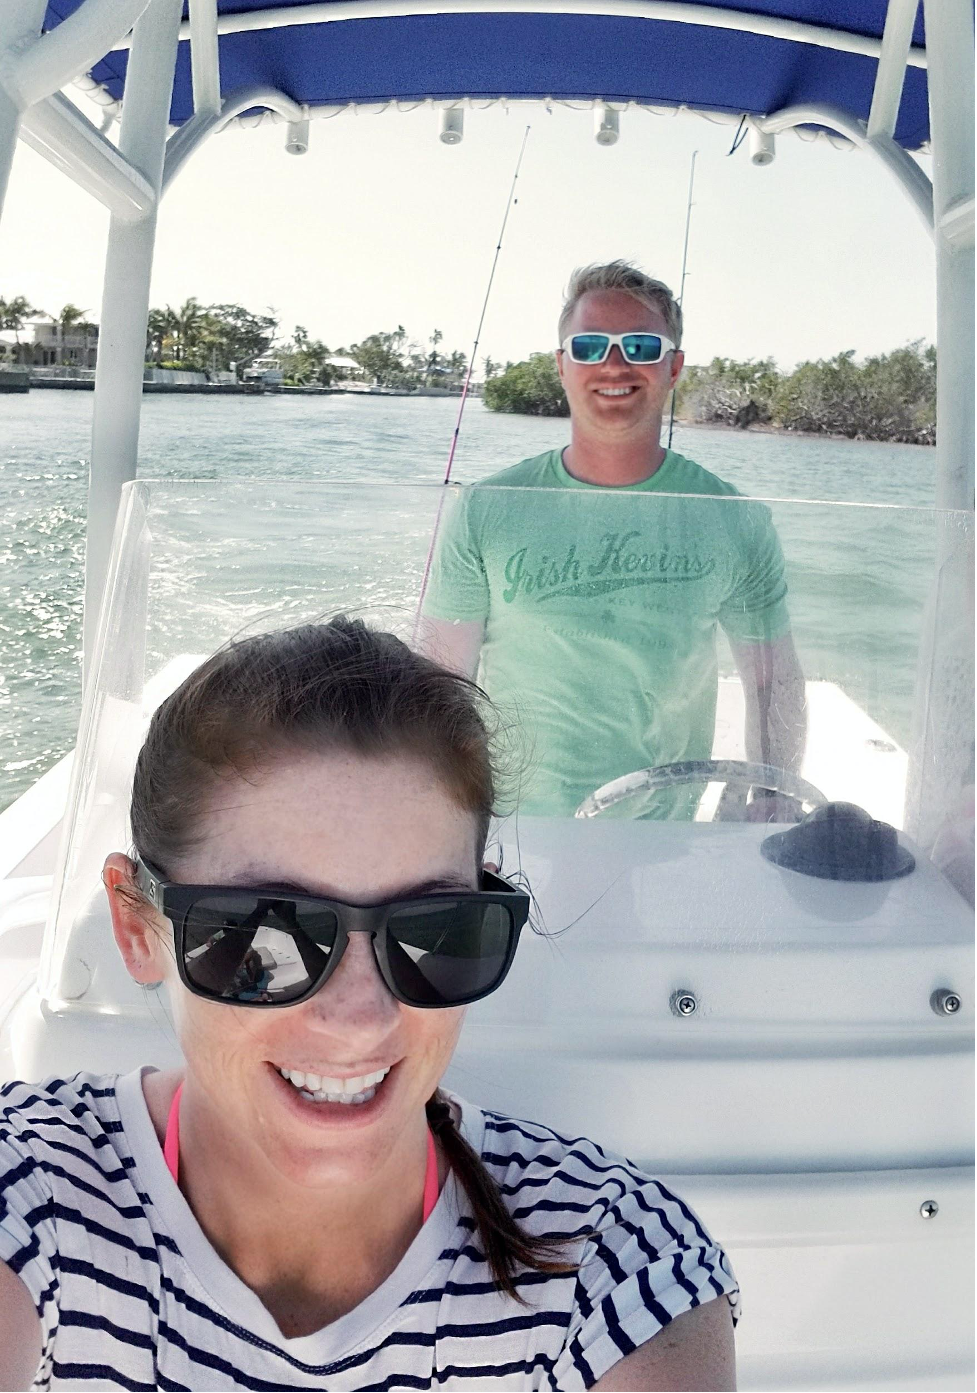 Boat selfie of man and woman.